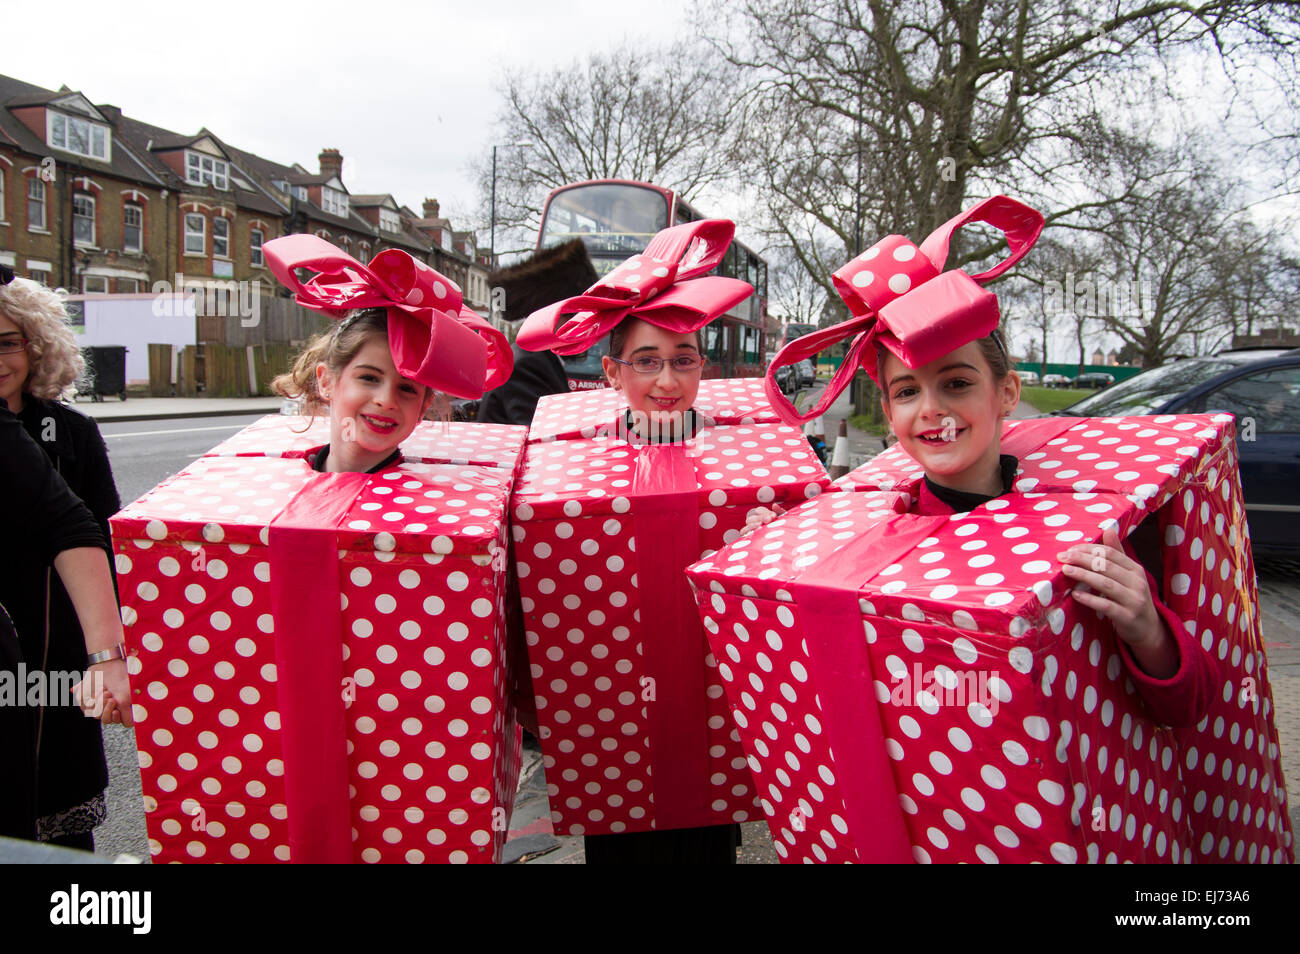 Three girls in homemade fancy dress costumes for the jewish holiday three girls in homemade fancy dress costumes for the jewish holiday of purim in stamford hill london 5 march 2015 solutioingenieria Images